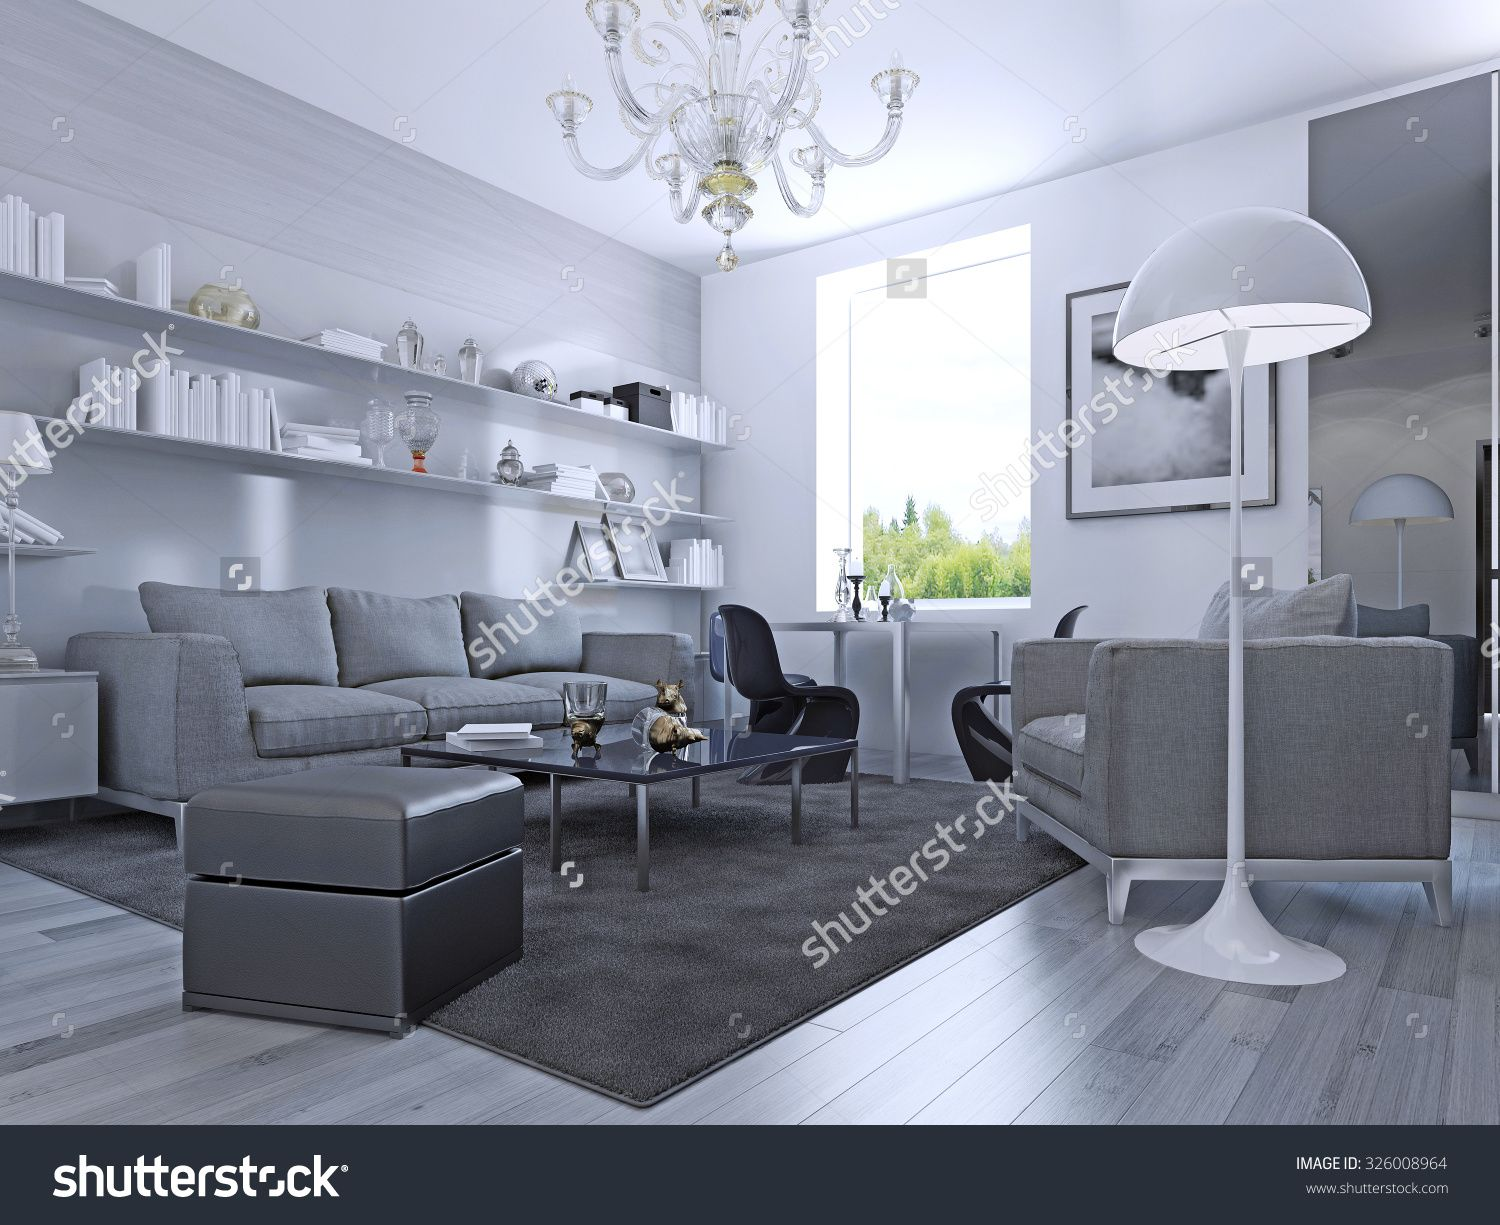 Living Room In Modern Style With White Walls And Awesome Pale Grey Laminate Flooring Pale Grey Laminat Grey Walls Living Room Light Grey Walls Living Room Grey